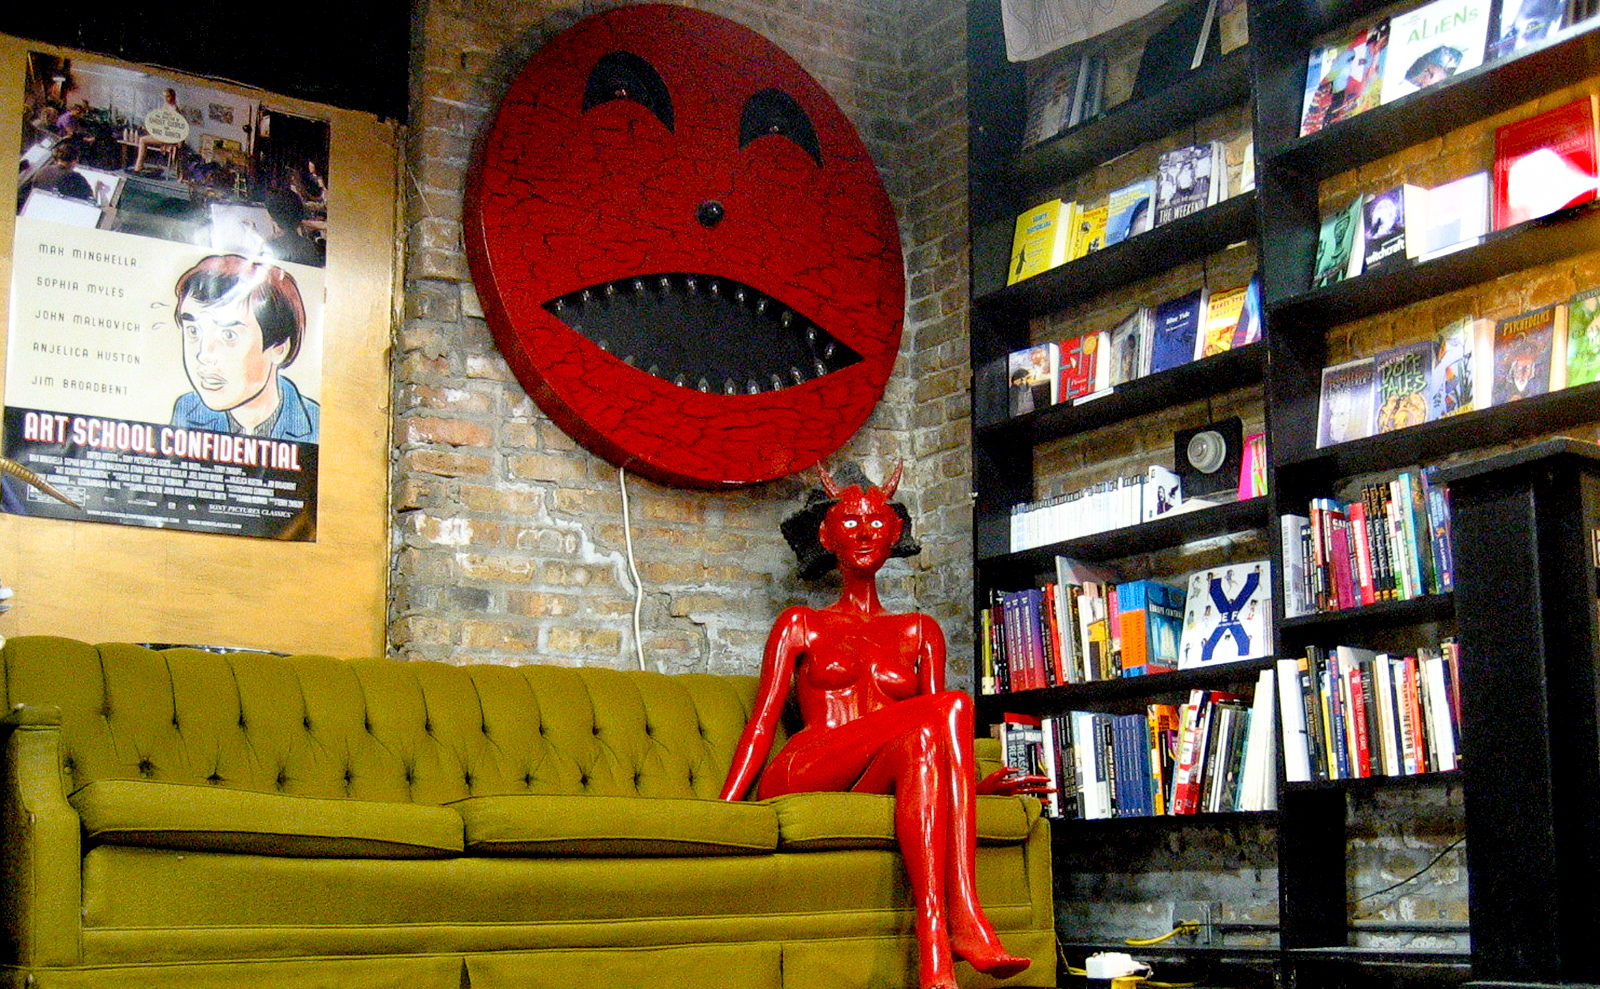 stage area in quimby's with green couch and red lady-devil mannequin